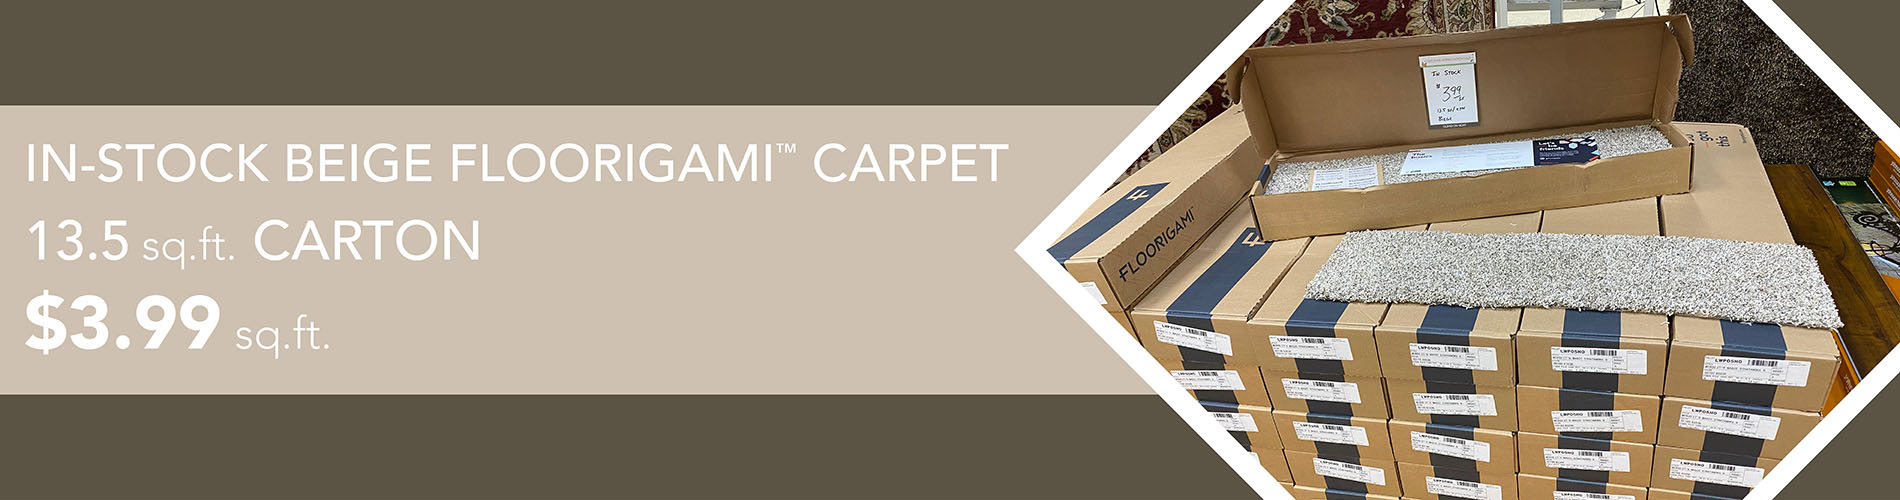 In-Stock Beige Floorigami Carpet    13.5 sq.ft. carton    $3.99 sq.ft.